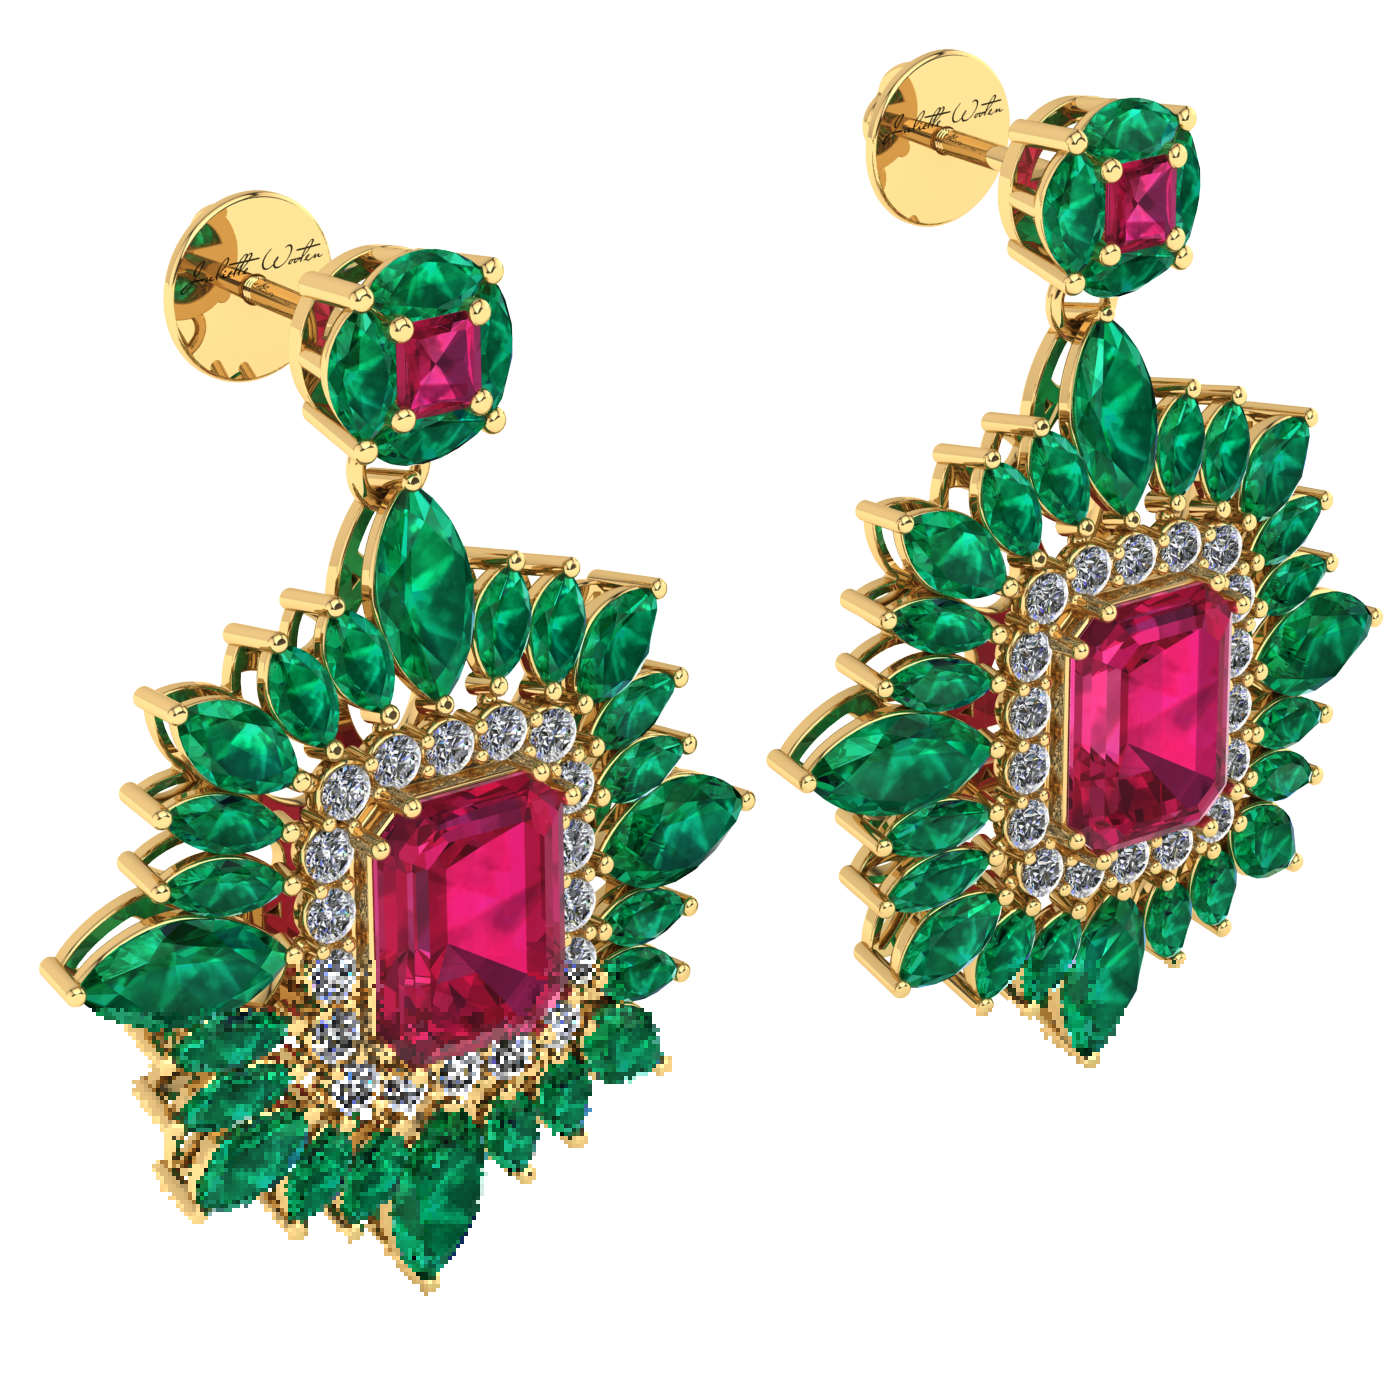 white diamond jewellery gold jewelry and earrings earring color ruby dangling stone fashion